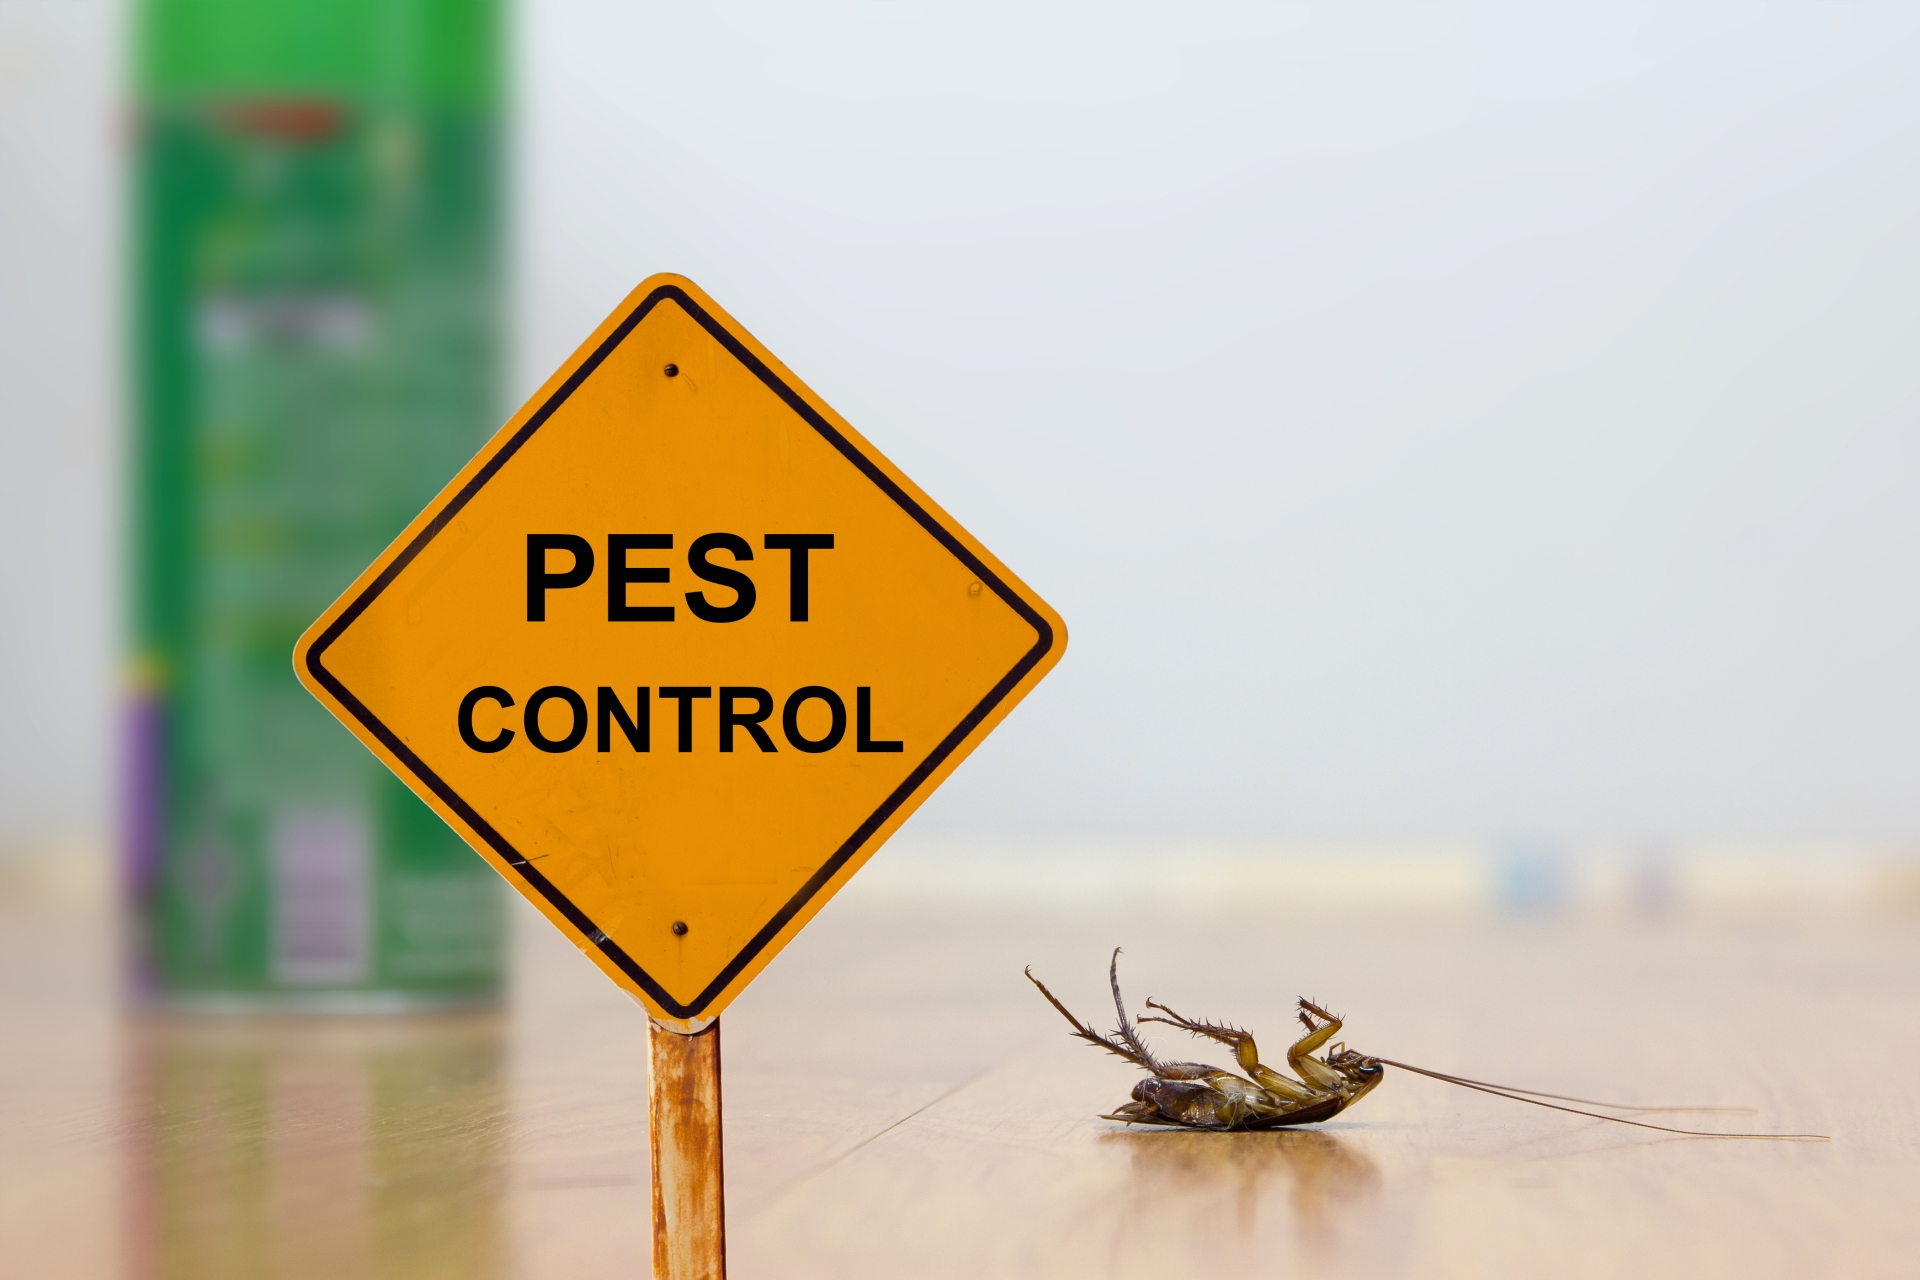 24 Hour Pest Control, Pest Control in Purfleet, RM19. Call Now 020 8166 9746